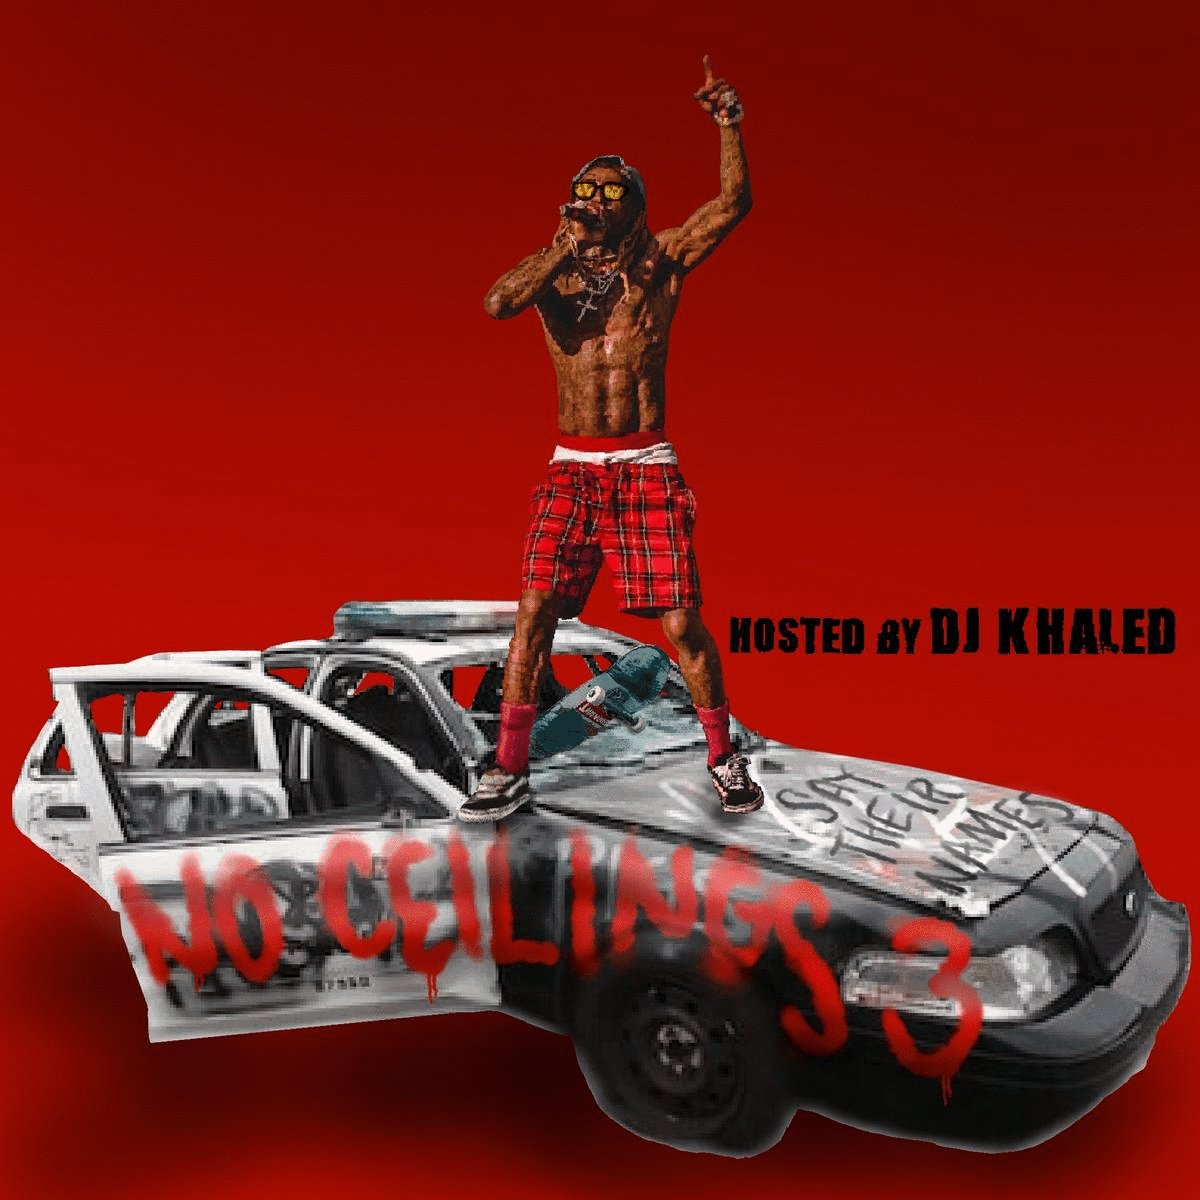 😳 Lil Wayne  NO CEILINGS 3 . 😳 🔥😳 🤯 @LilTunechi   THEY TRIED PUT A CELING ON OUR GREATNESS SO WE TOOK THE CEILING OFF ❗️ ANOTHER 😳NE ❗️@mackmaine  🔜 ❗️ powered by @DatPiff @Worldstar